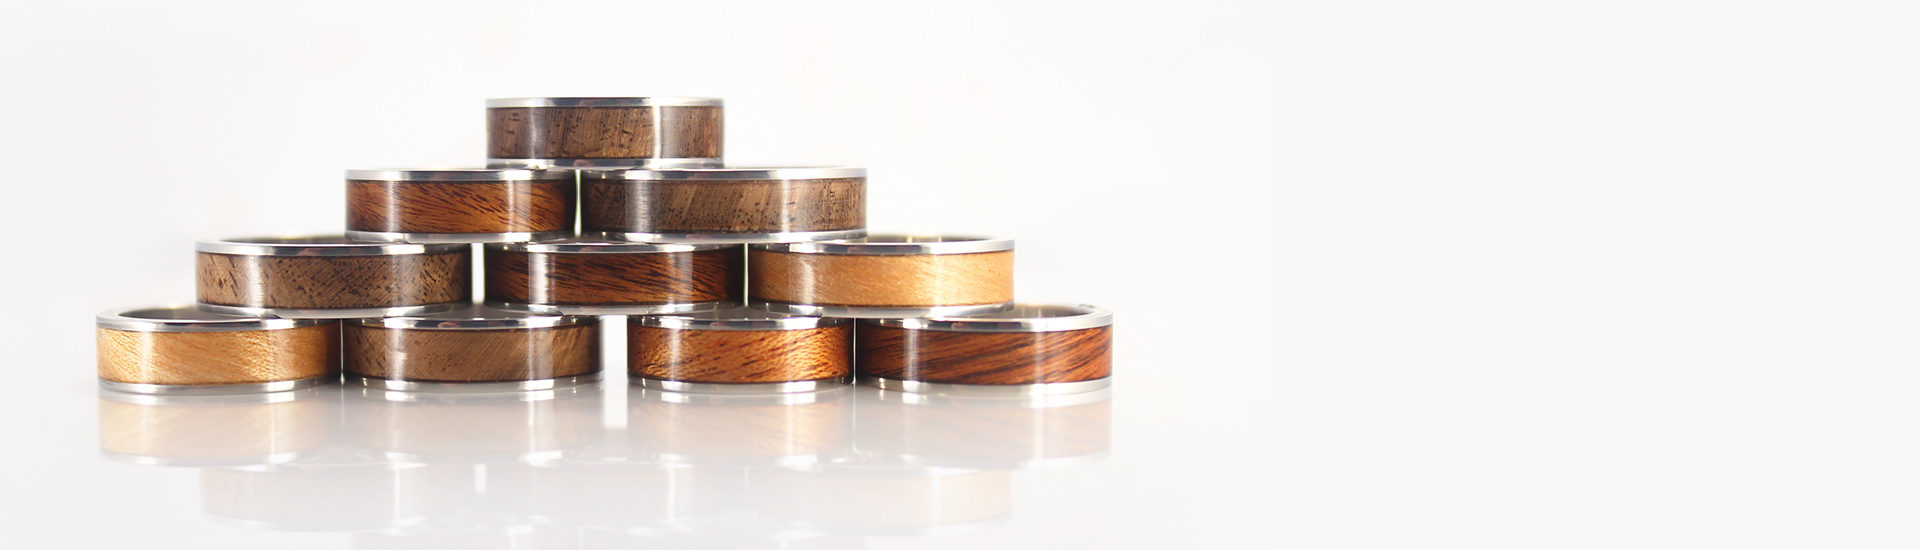 main-page-metal-bentwood-rings